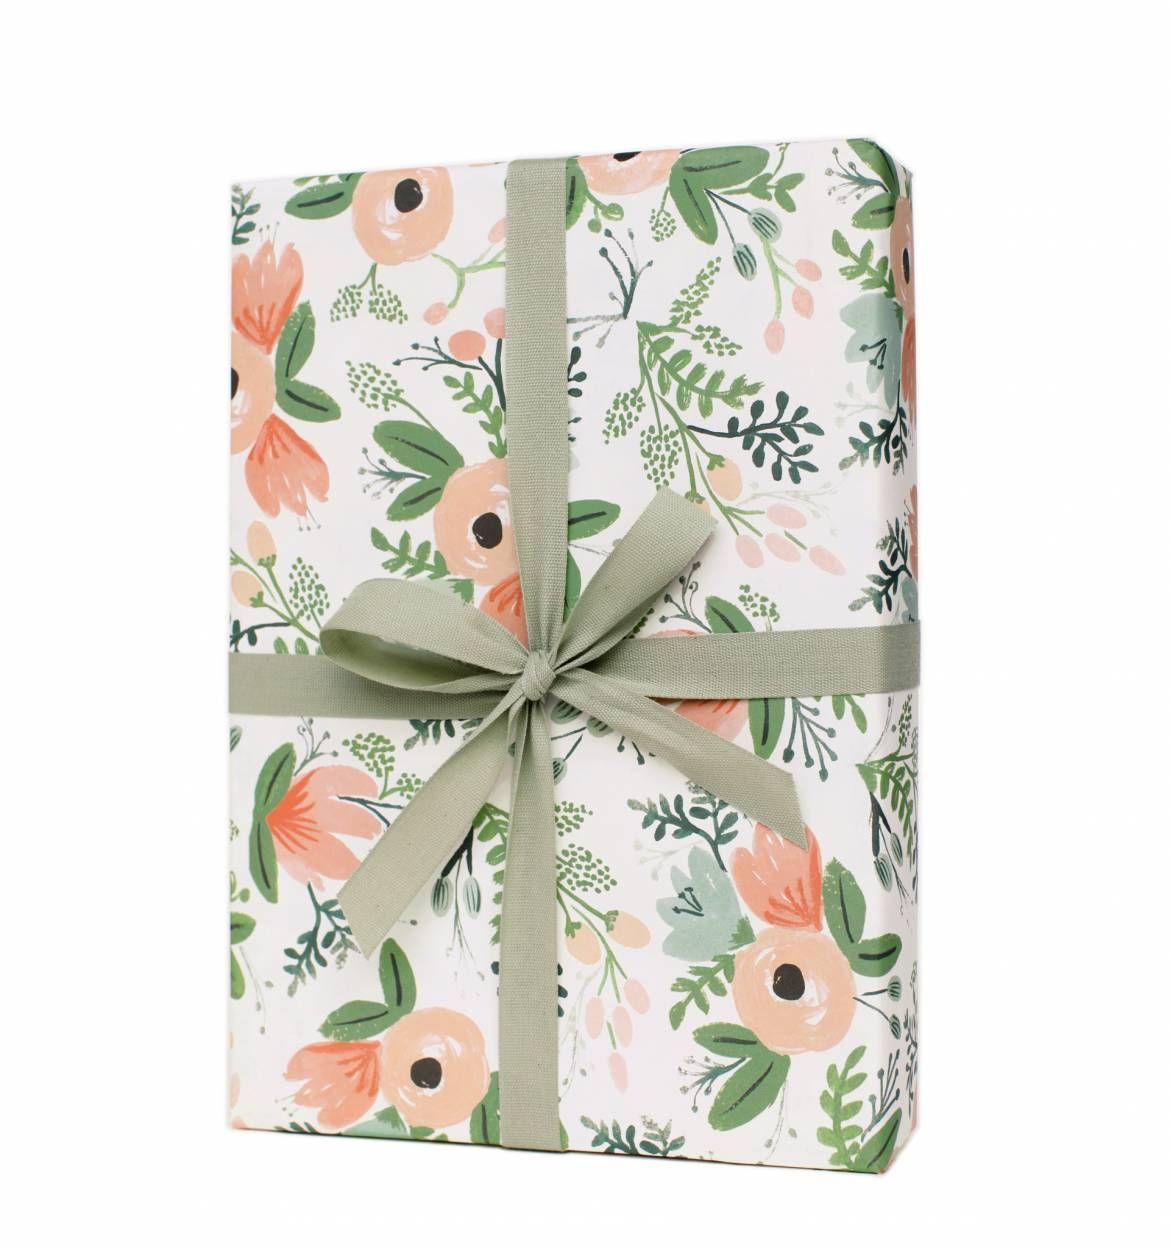 Wildflower Set of 3 Rolled Wrapping Sheets